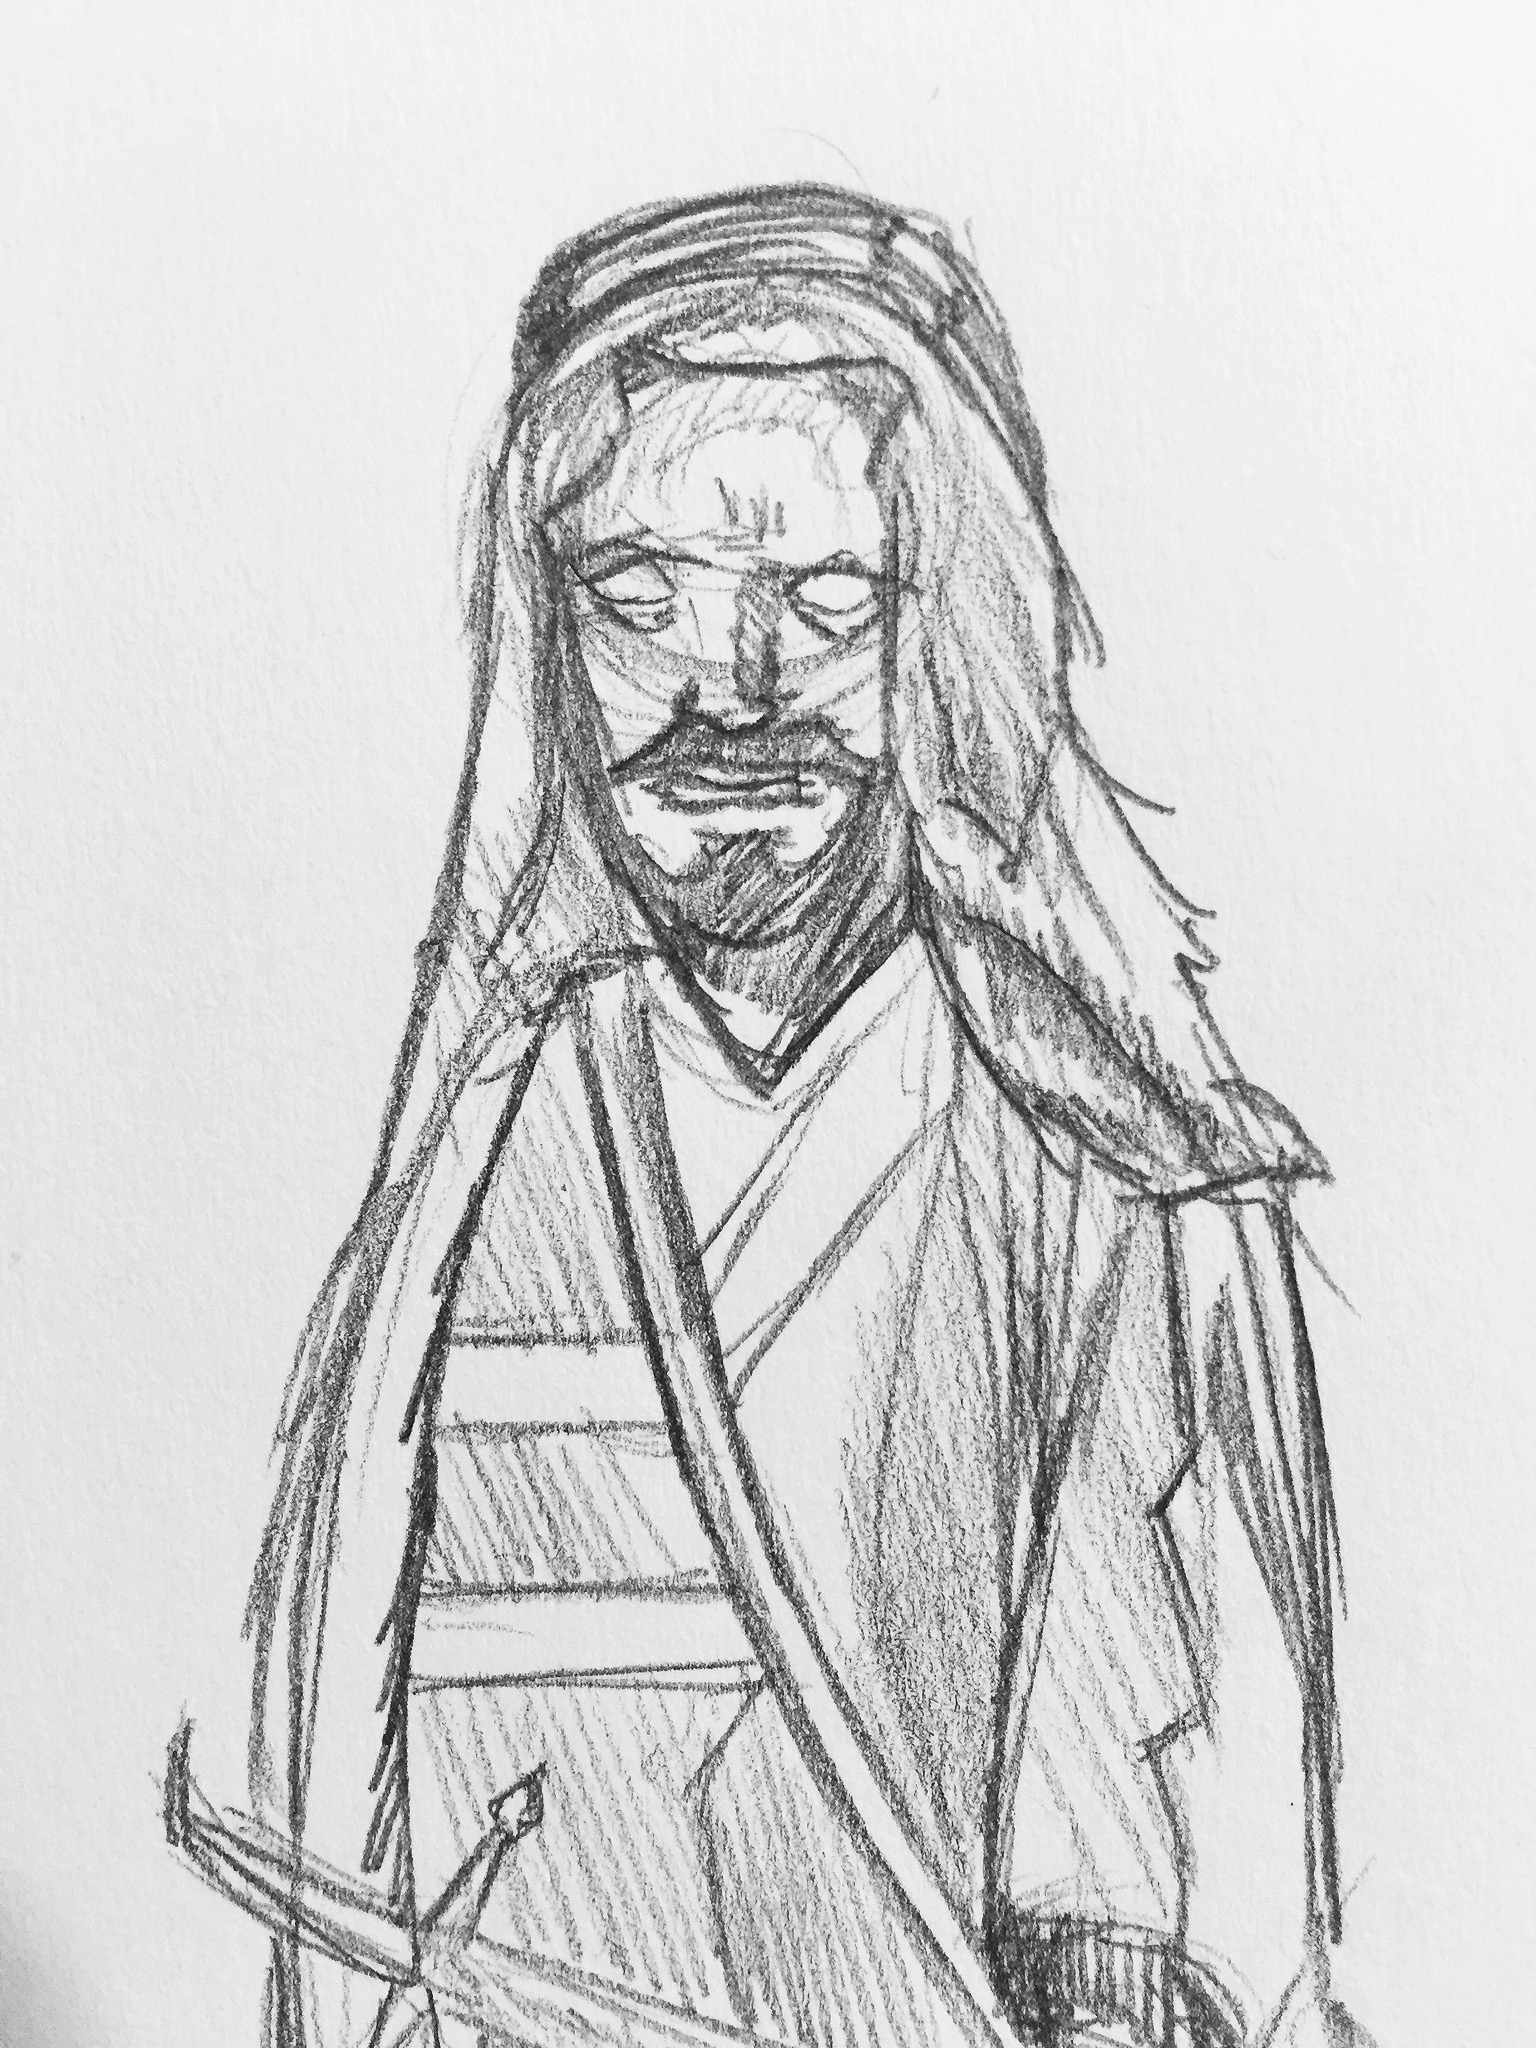 This next fellow over here is one of the desert-dwelling people in the story who worship the Gemini constellation as their twin deities. He looks a little ragged. Desert living is harsh.